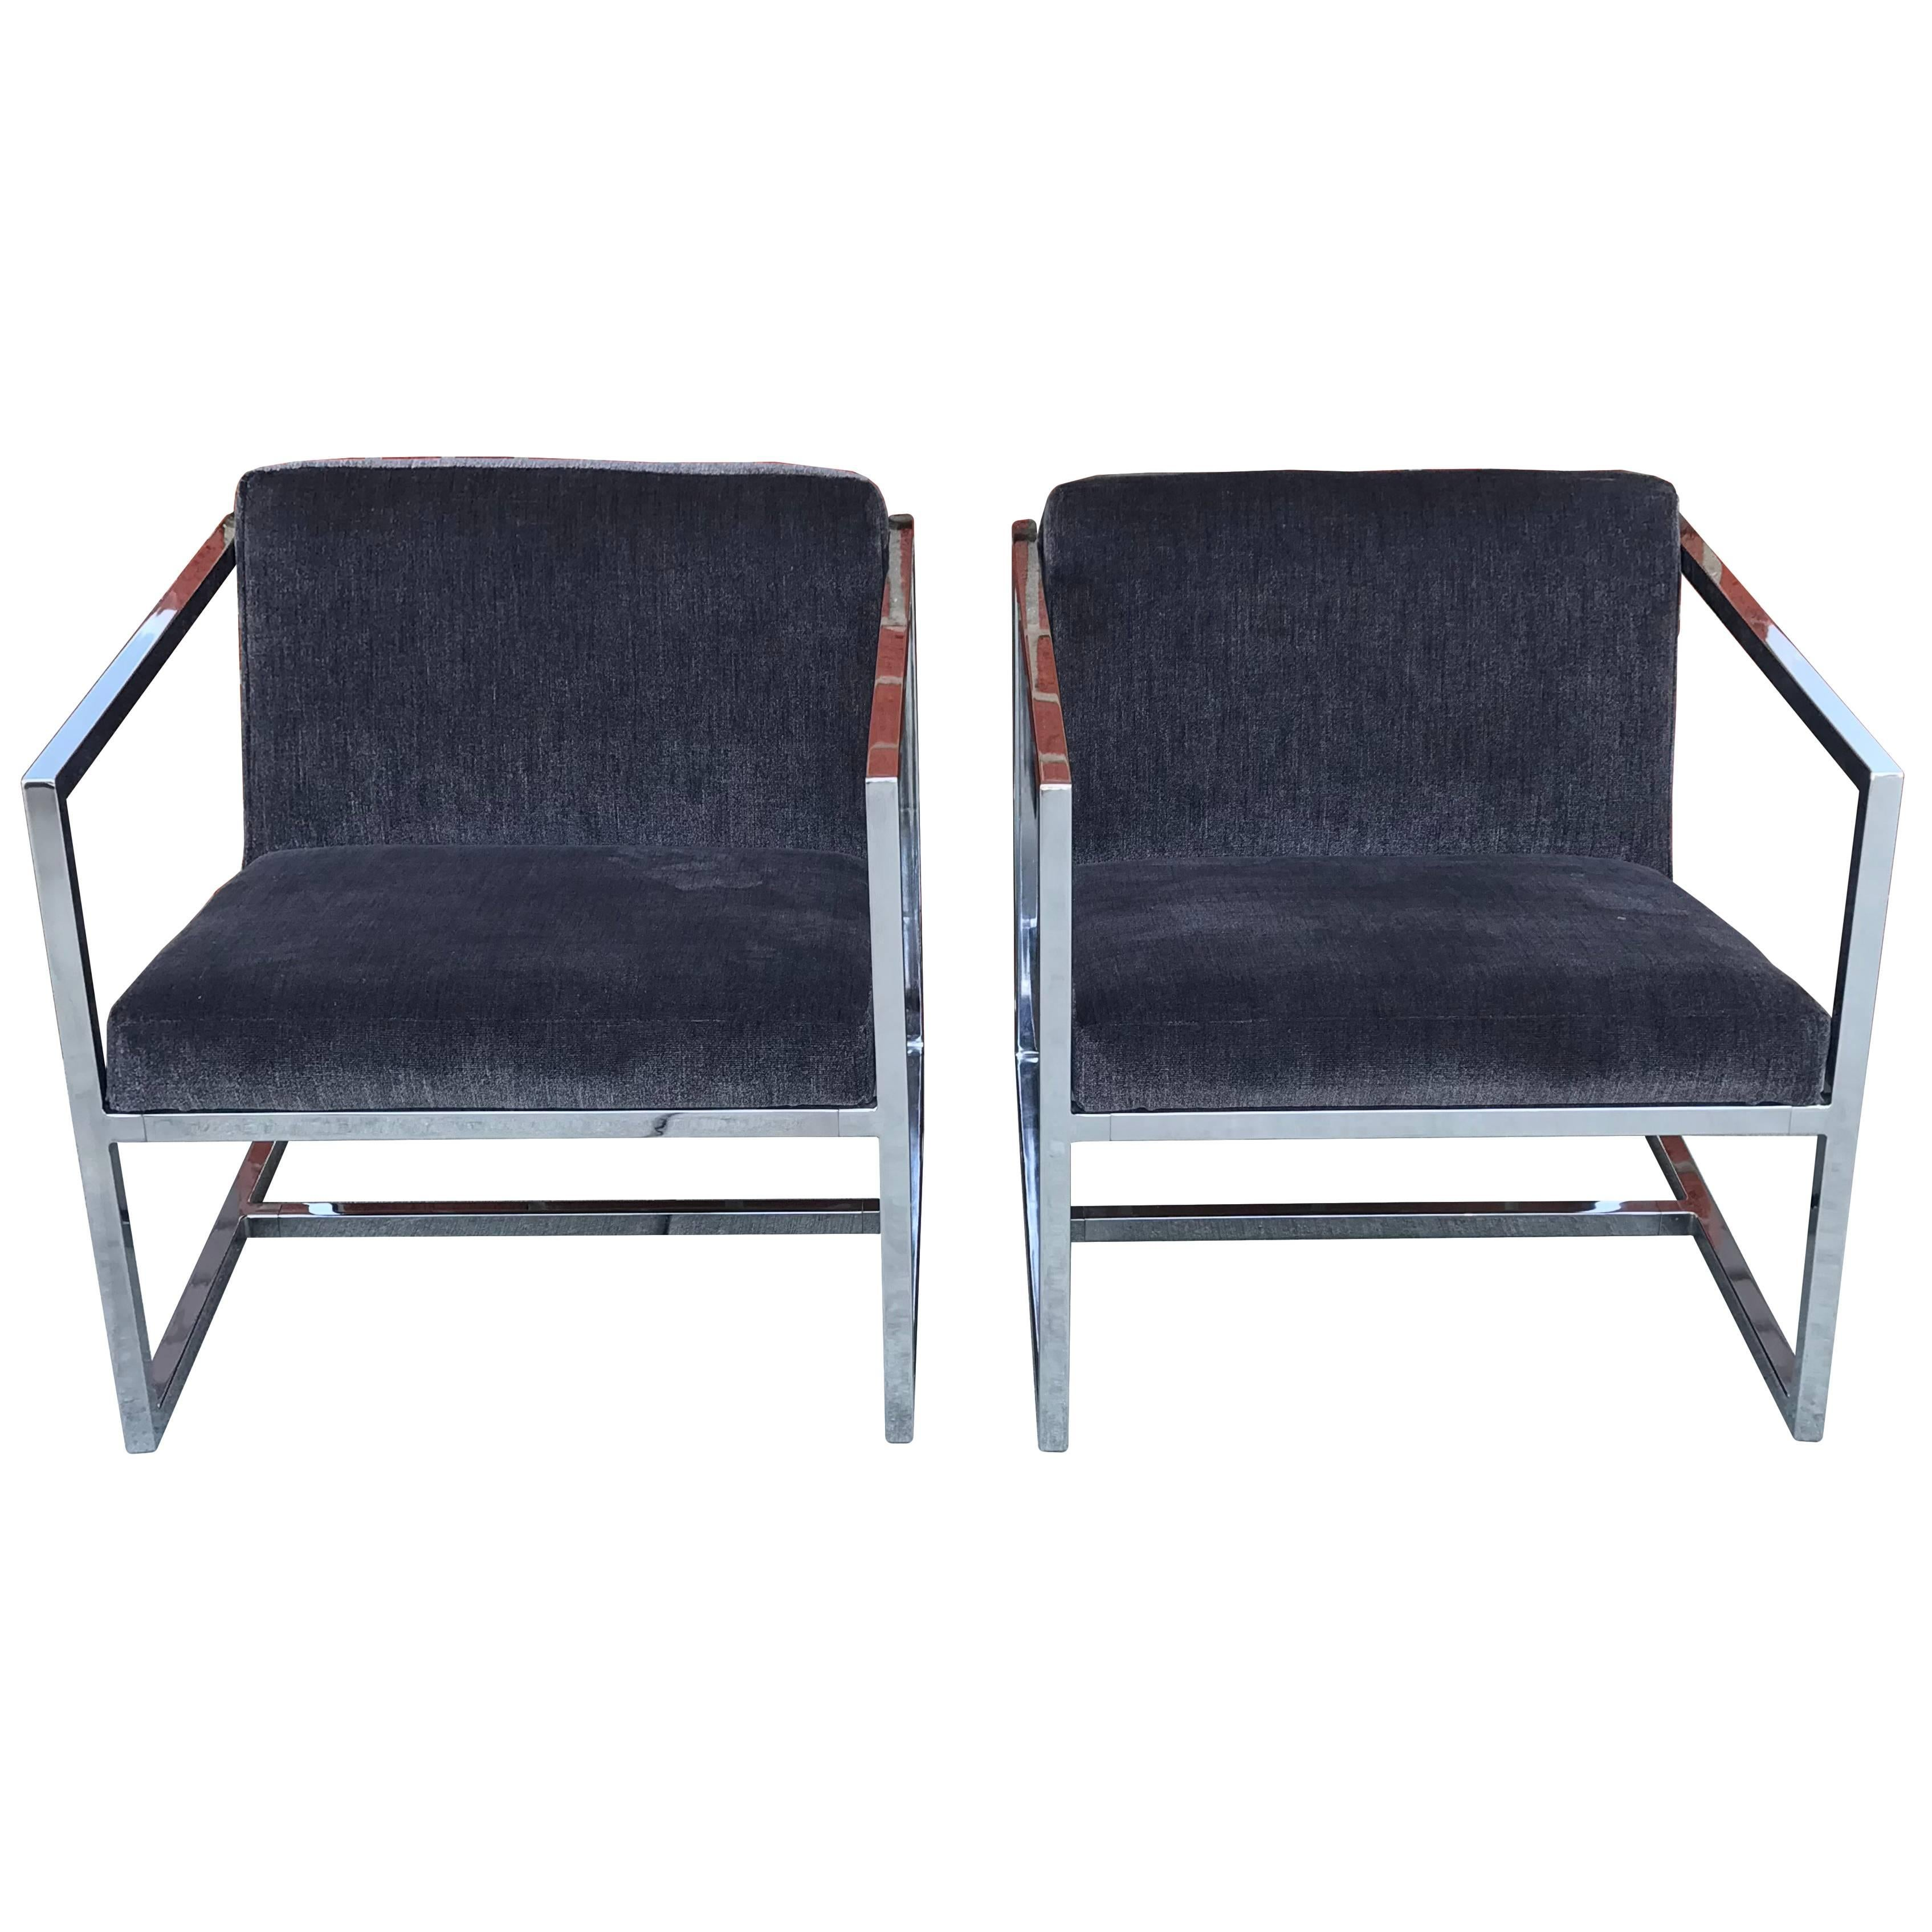 Cube Chairs 1980s Milo Baughman Style Chrome Cube Chairs In Gray Scalamandre Velvet Pair